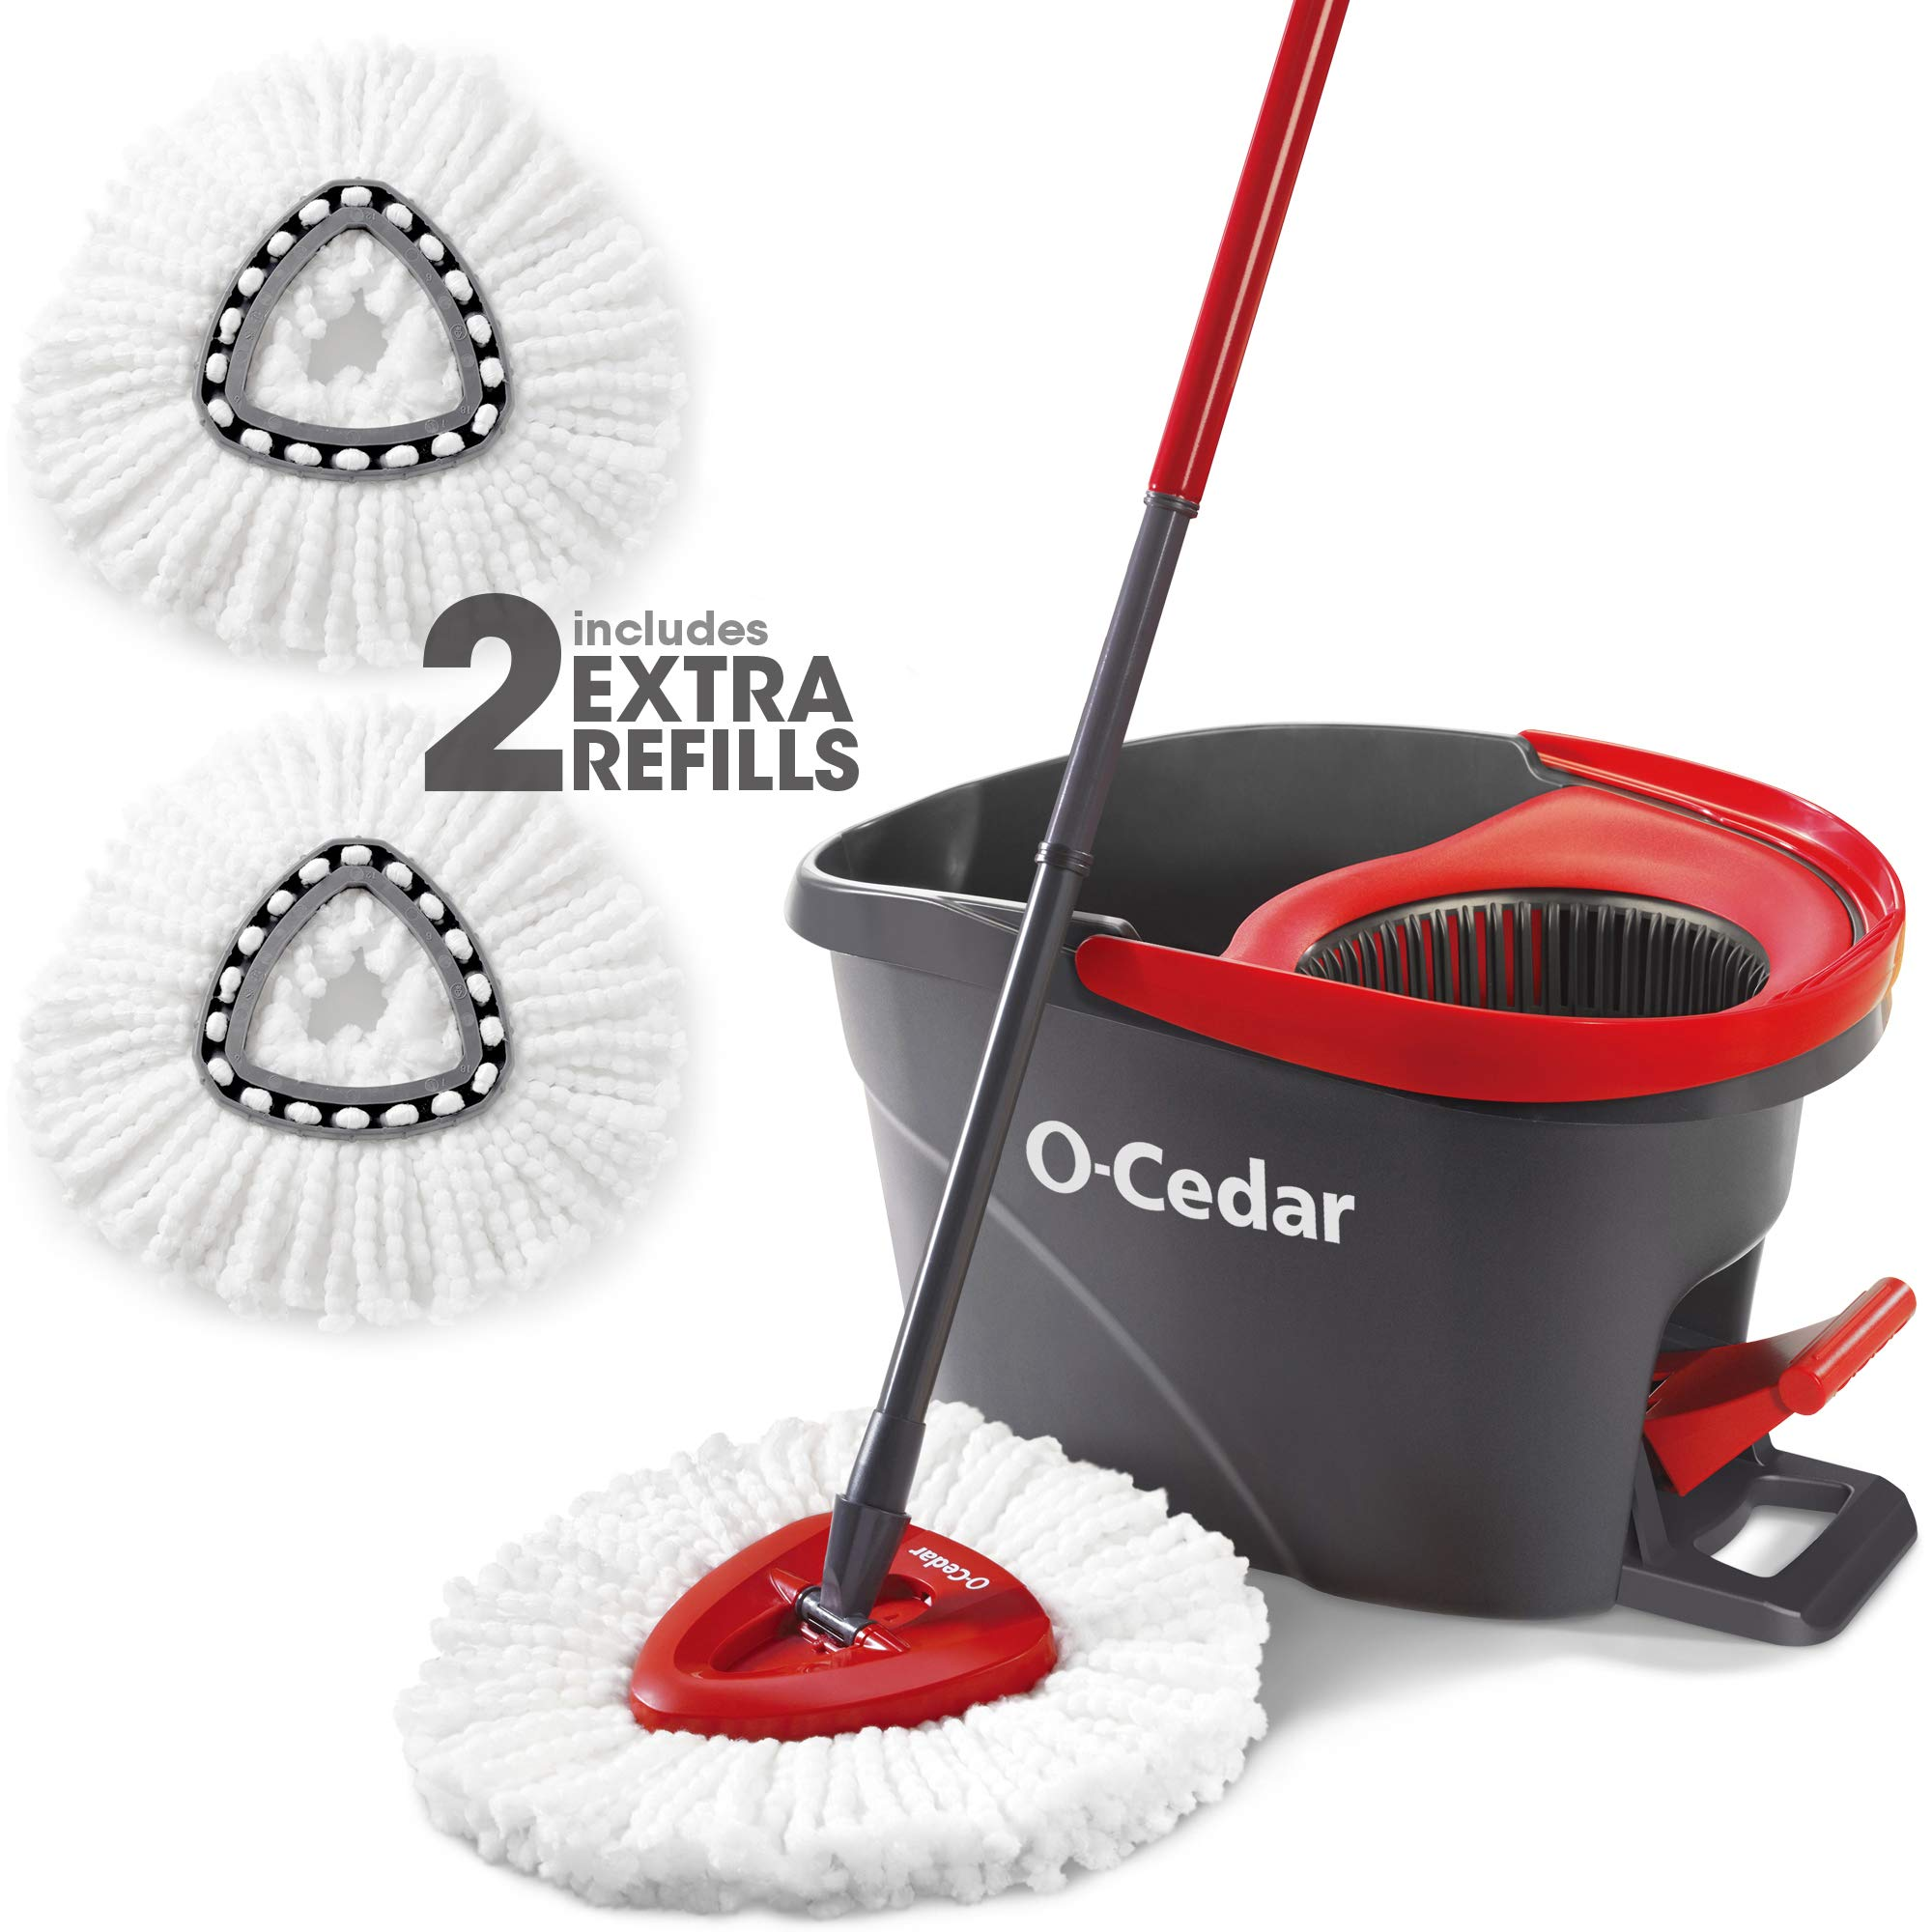 O-Cedar System Easy Wring Spin Mop & Bucket with 2 Extra Refills